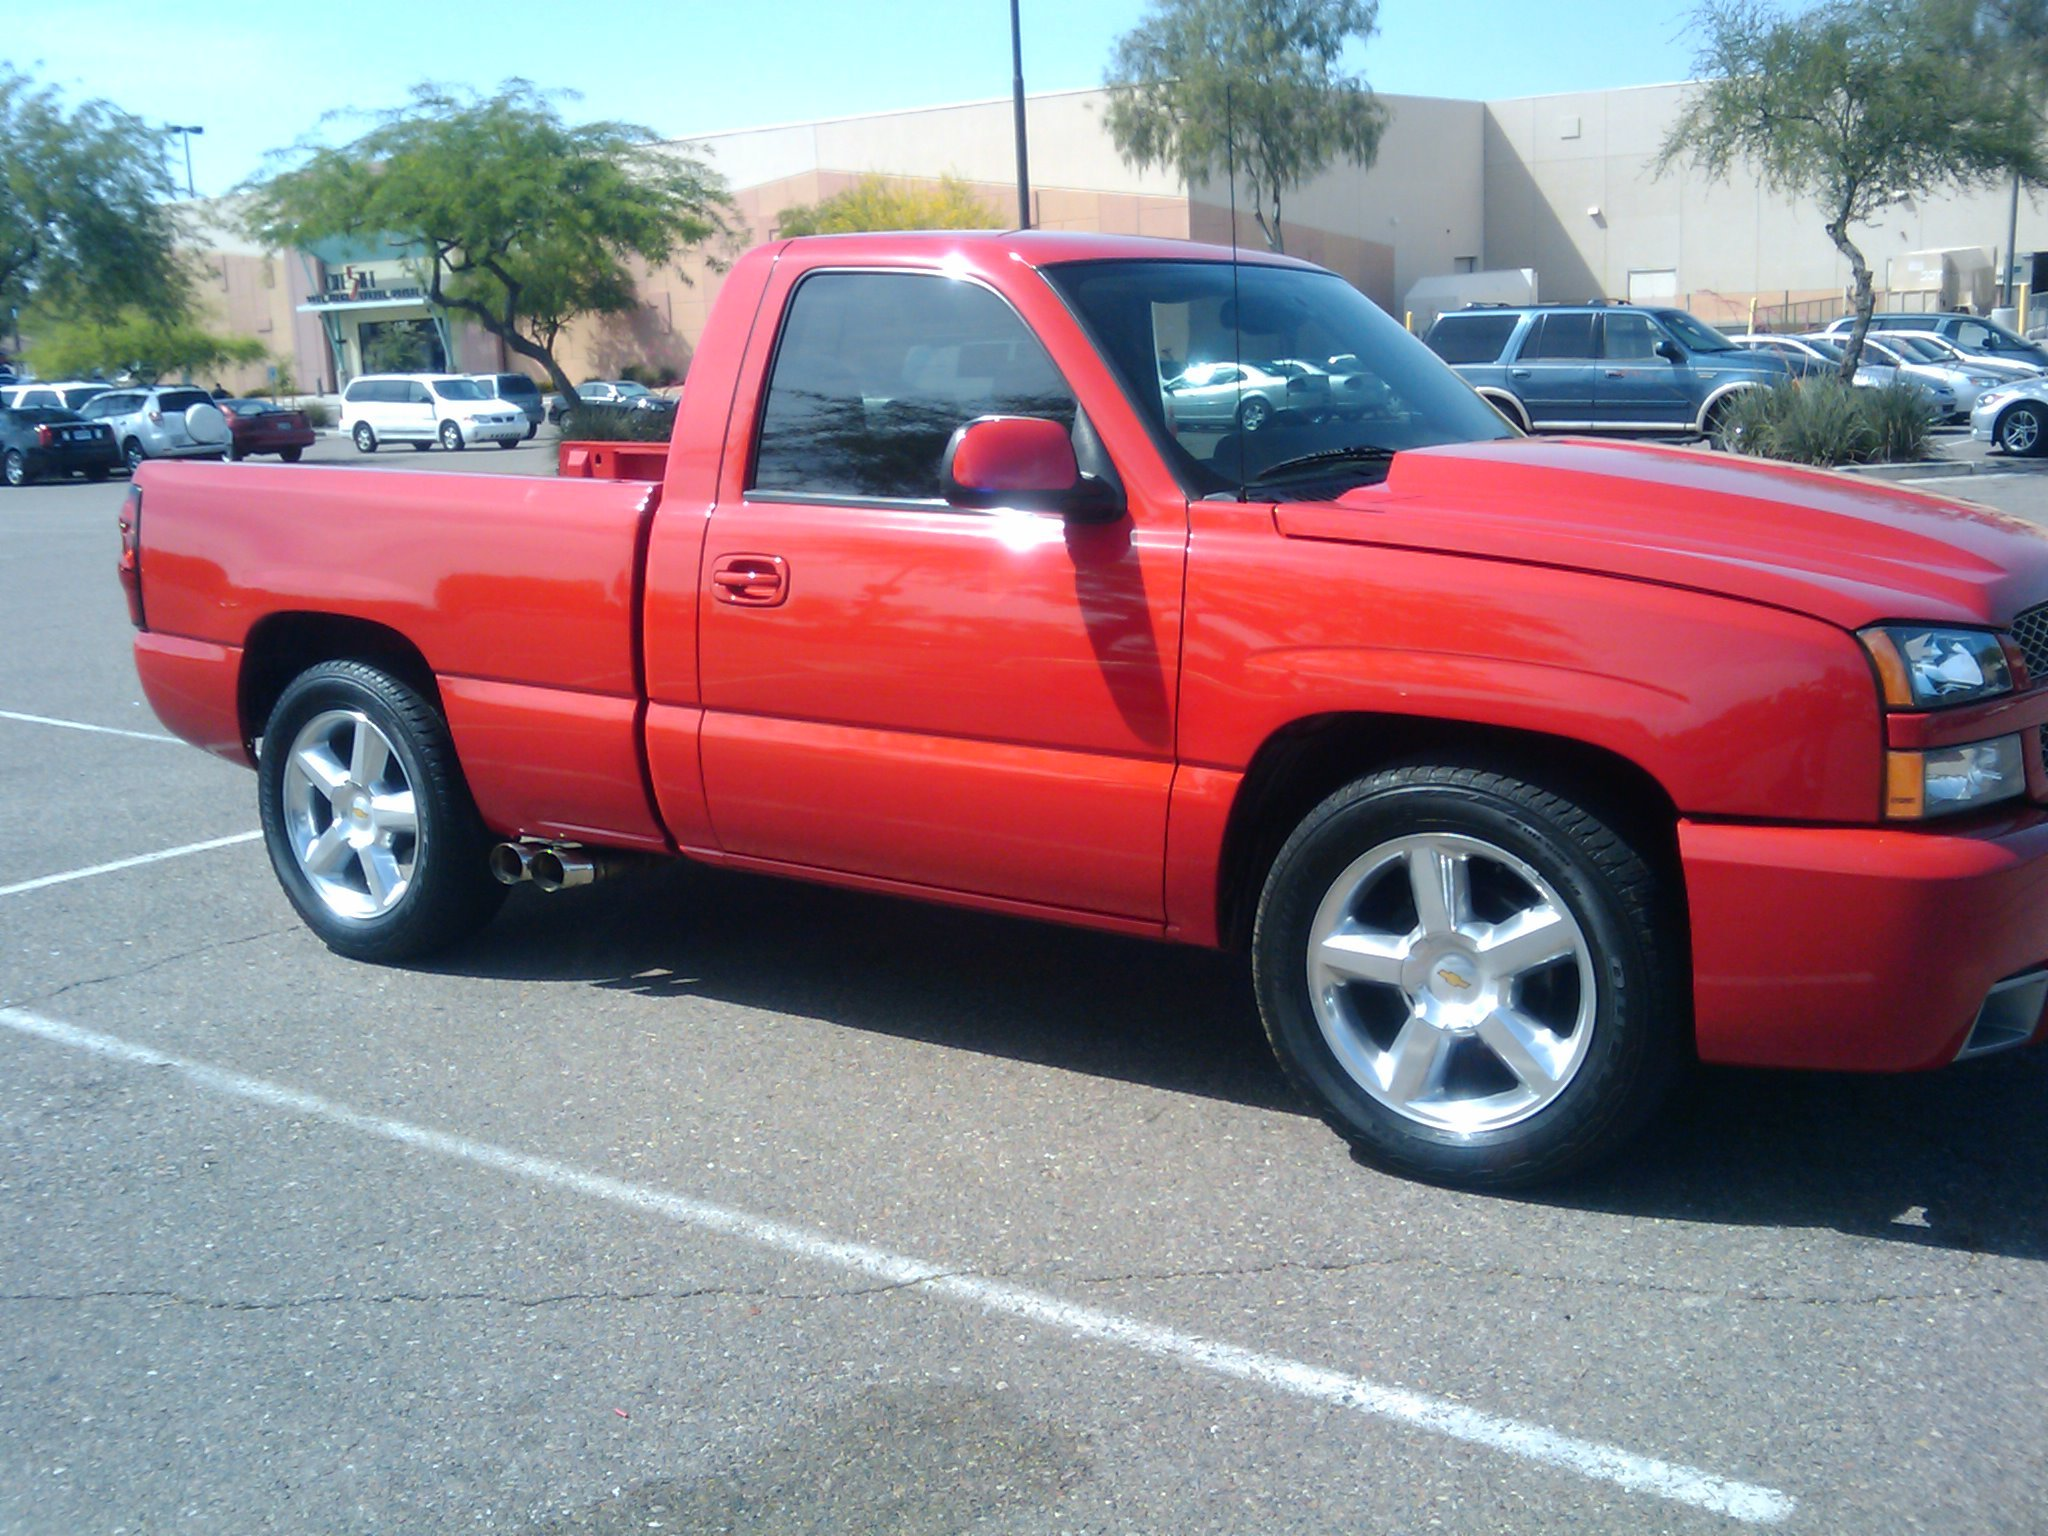 Chingas06 2004 Chevrolet Silverado 1500 Regular Cab Specs